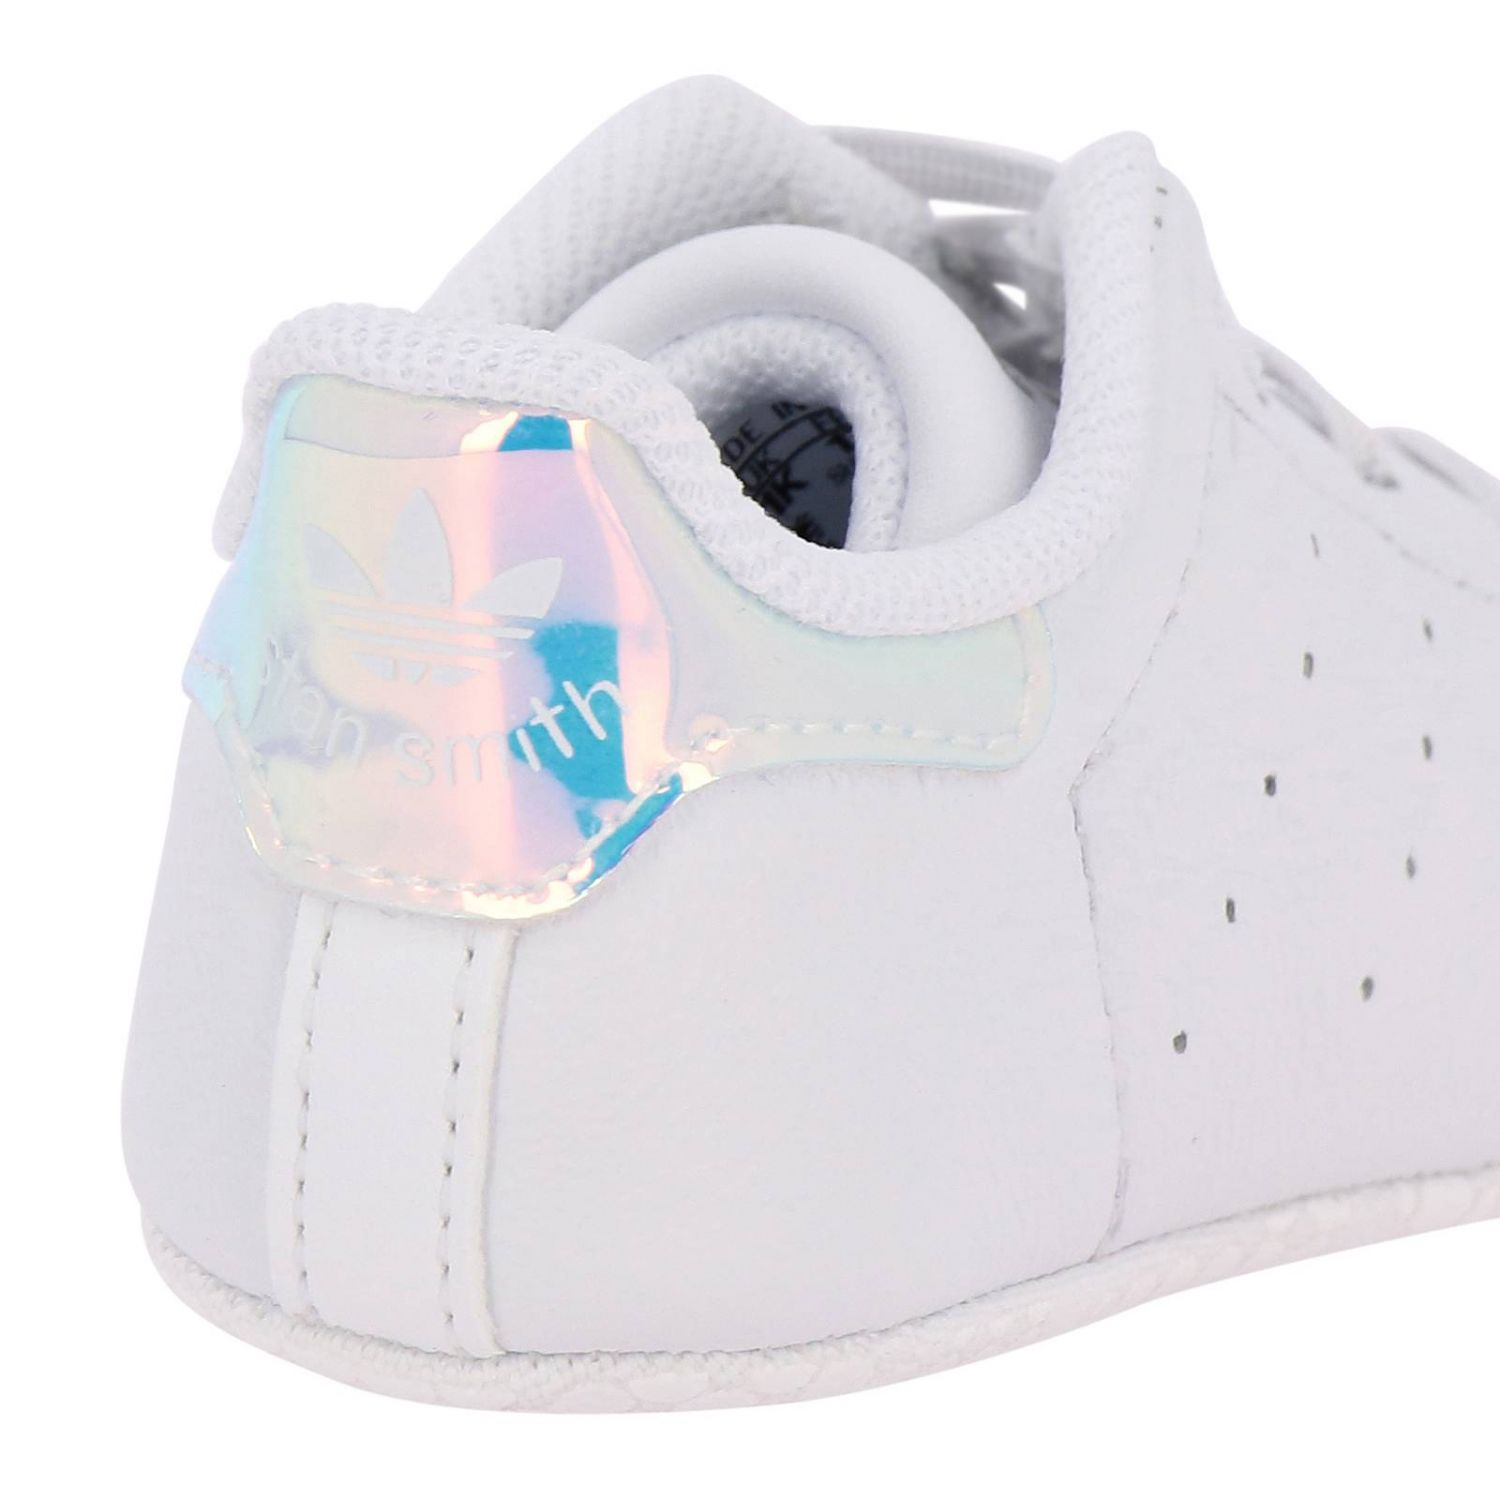 Shoes Adidas Originals: Stan Smith Crib Adidas Originals Sneakers in leather with mirrored heel white 4